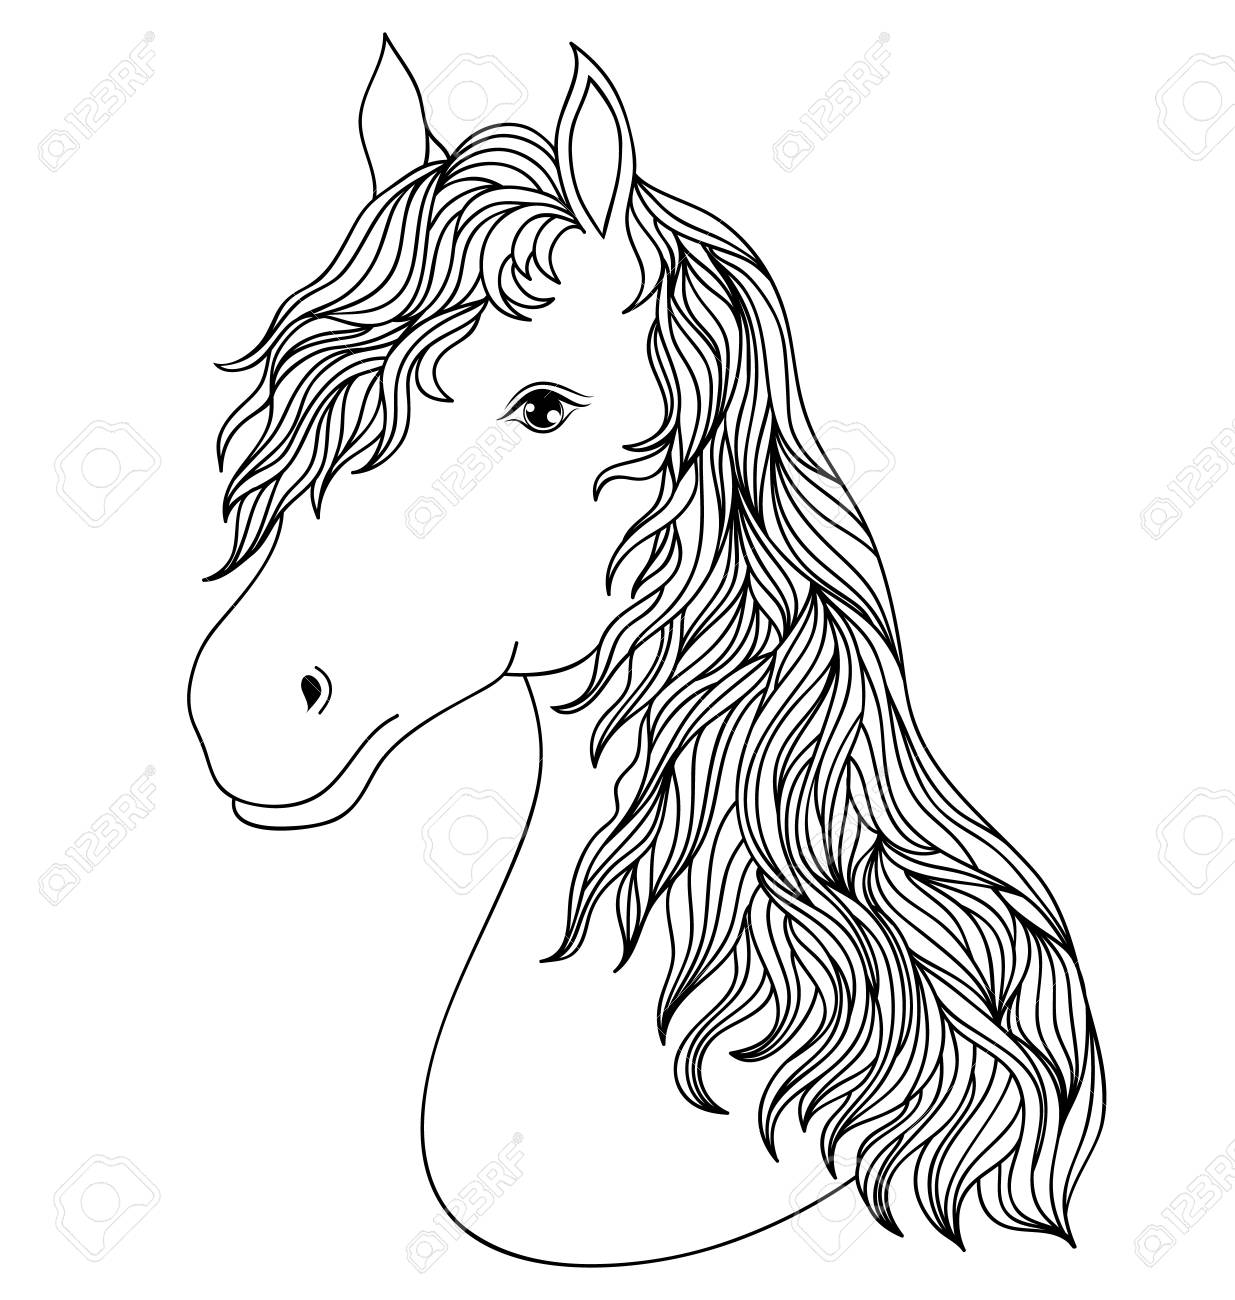 Hand Drawn Head Of Horse On White Background.Coloring Page For ...